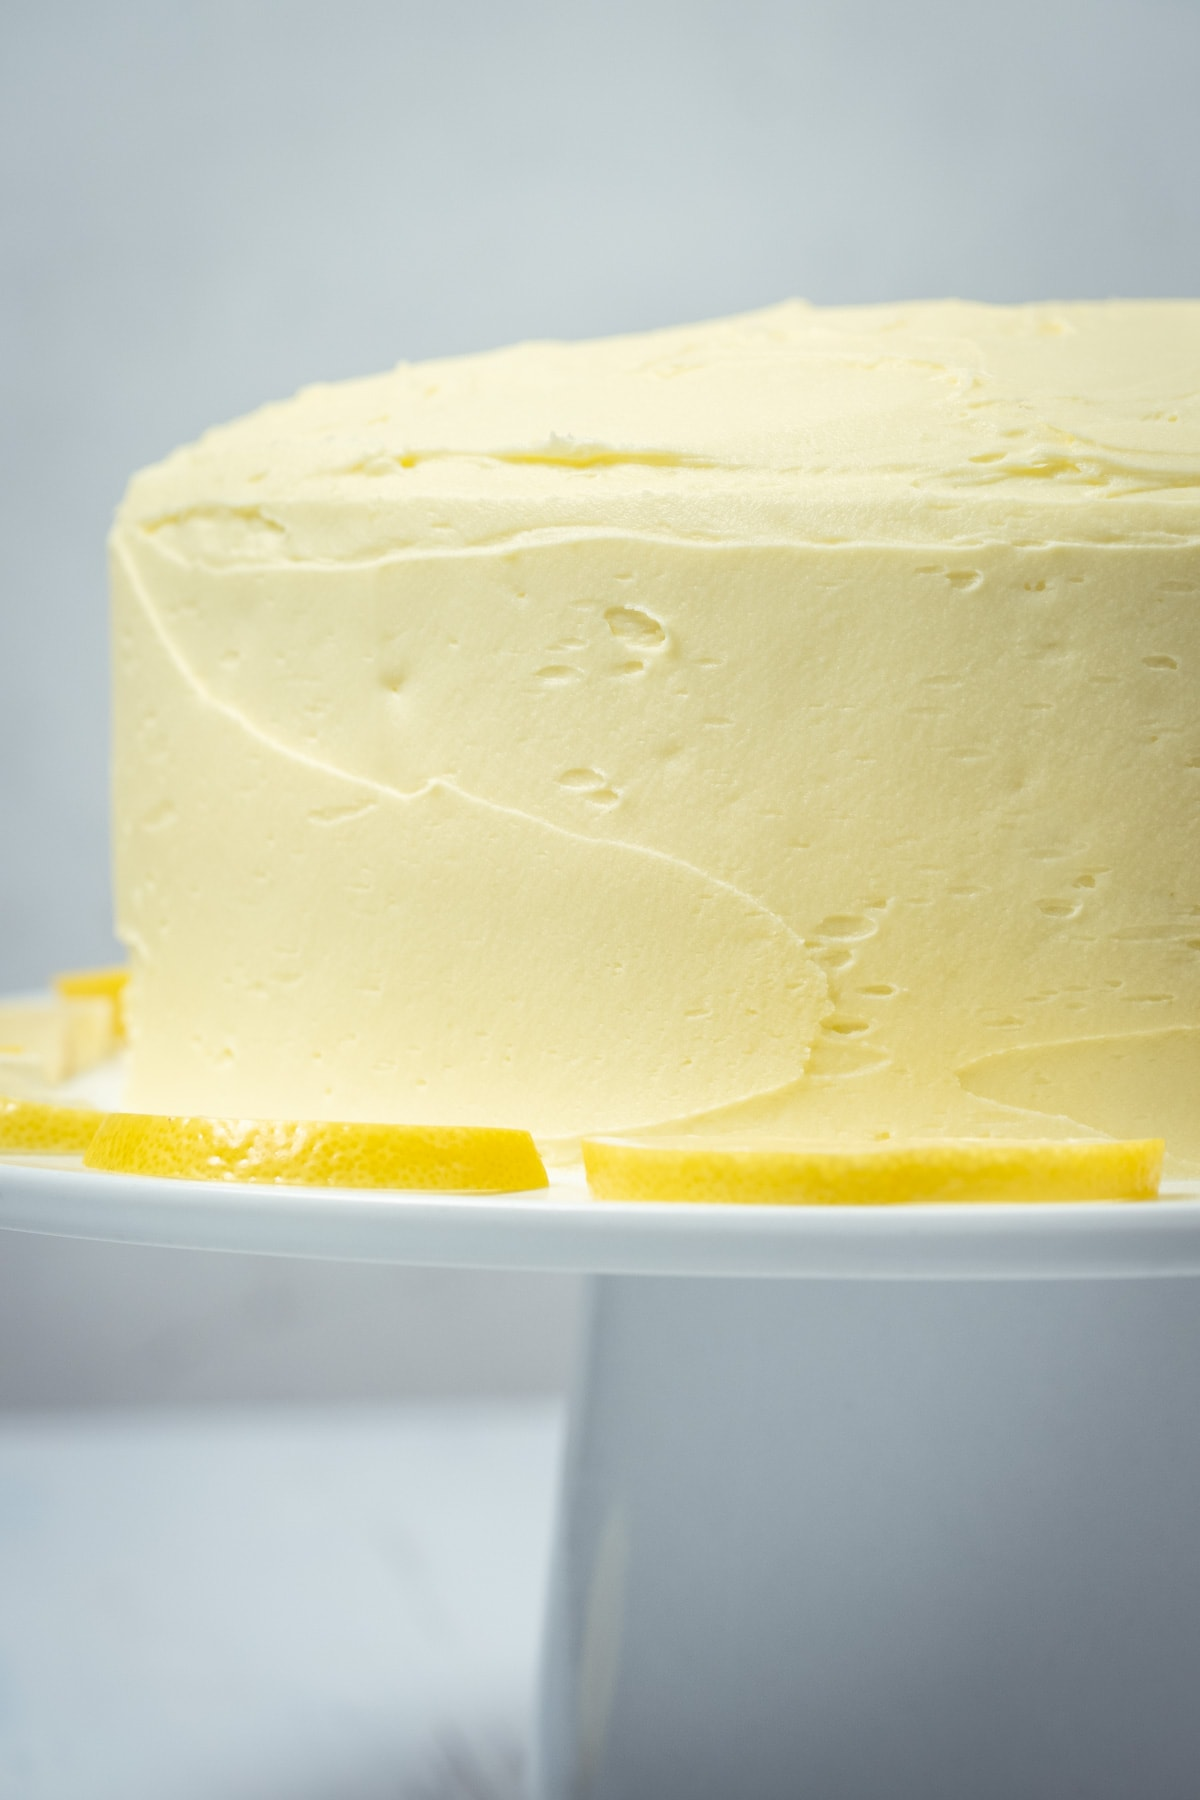 Frosted lemon cake on a white cake stand.